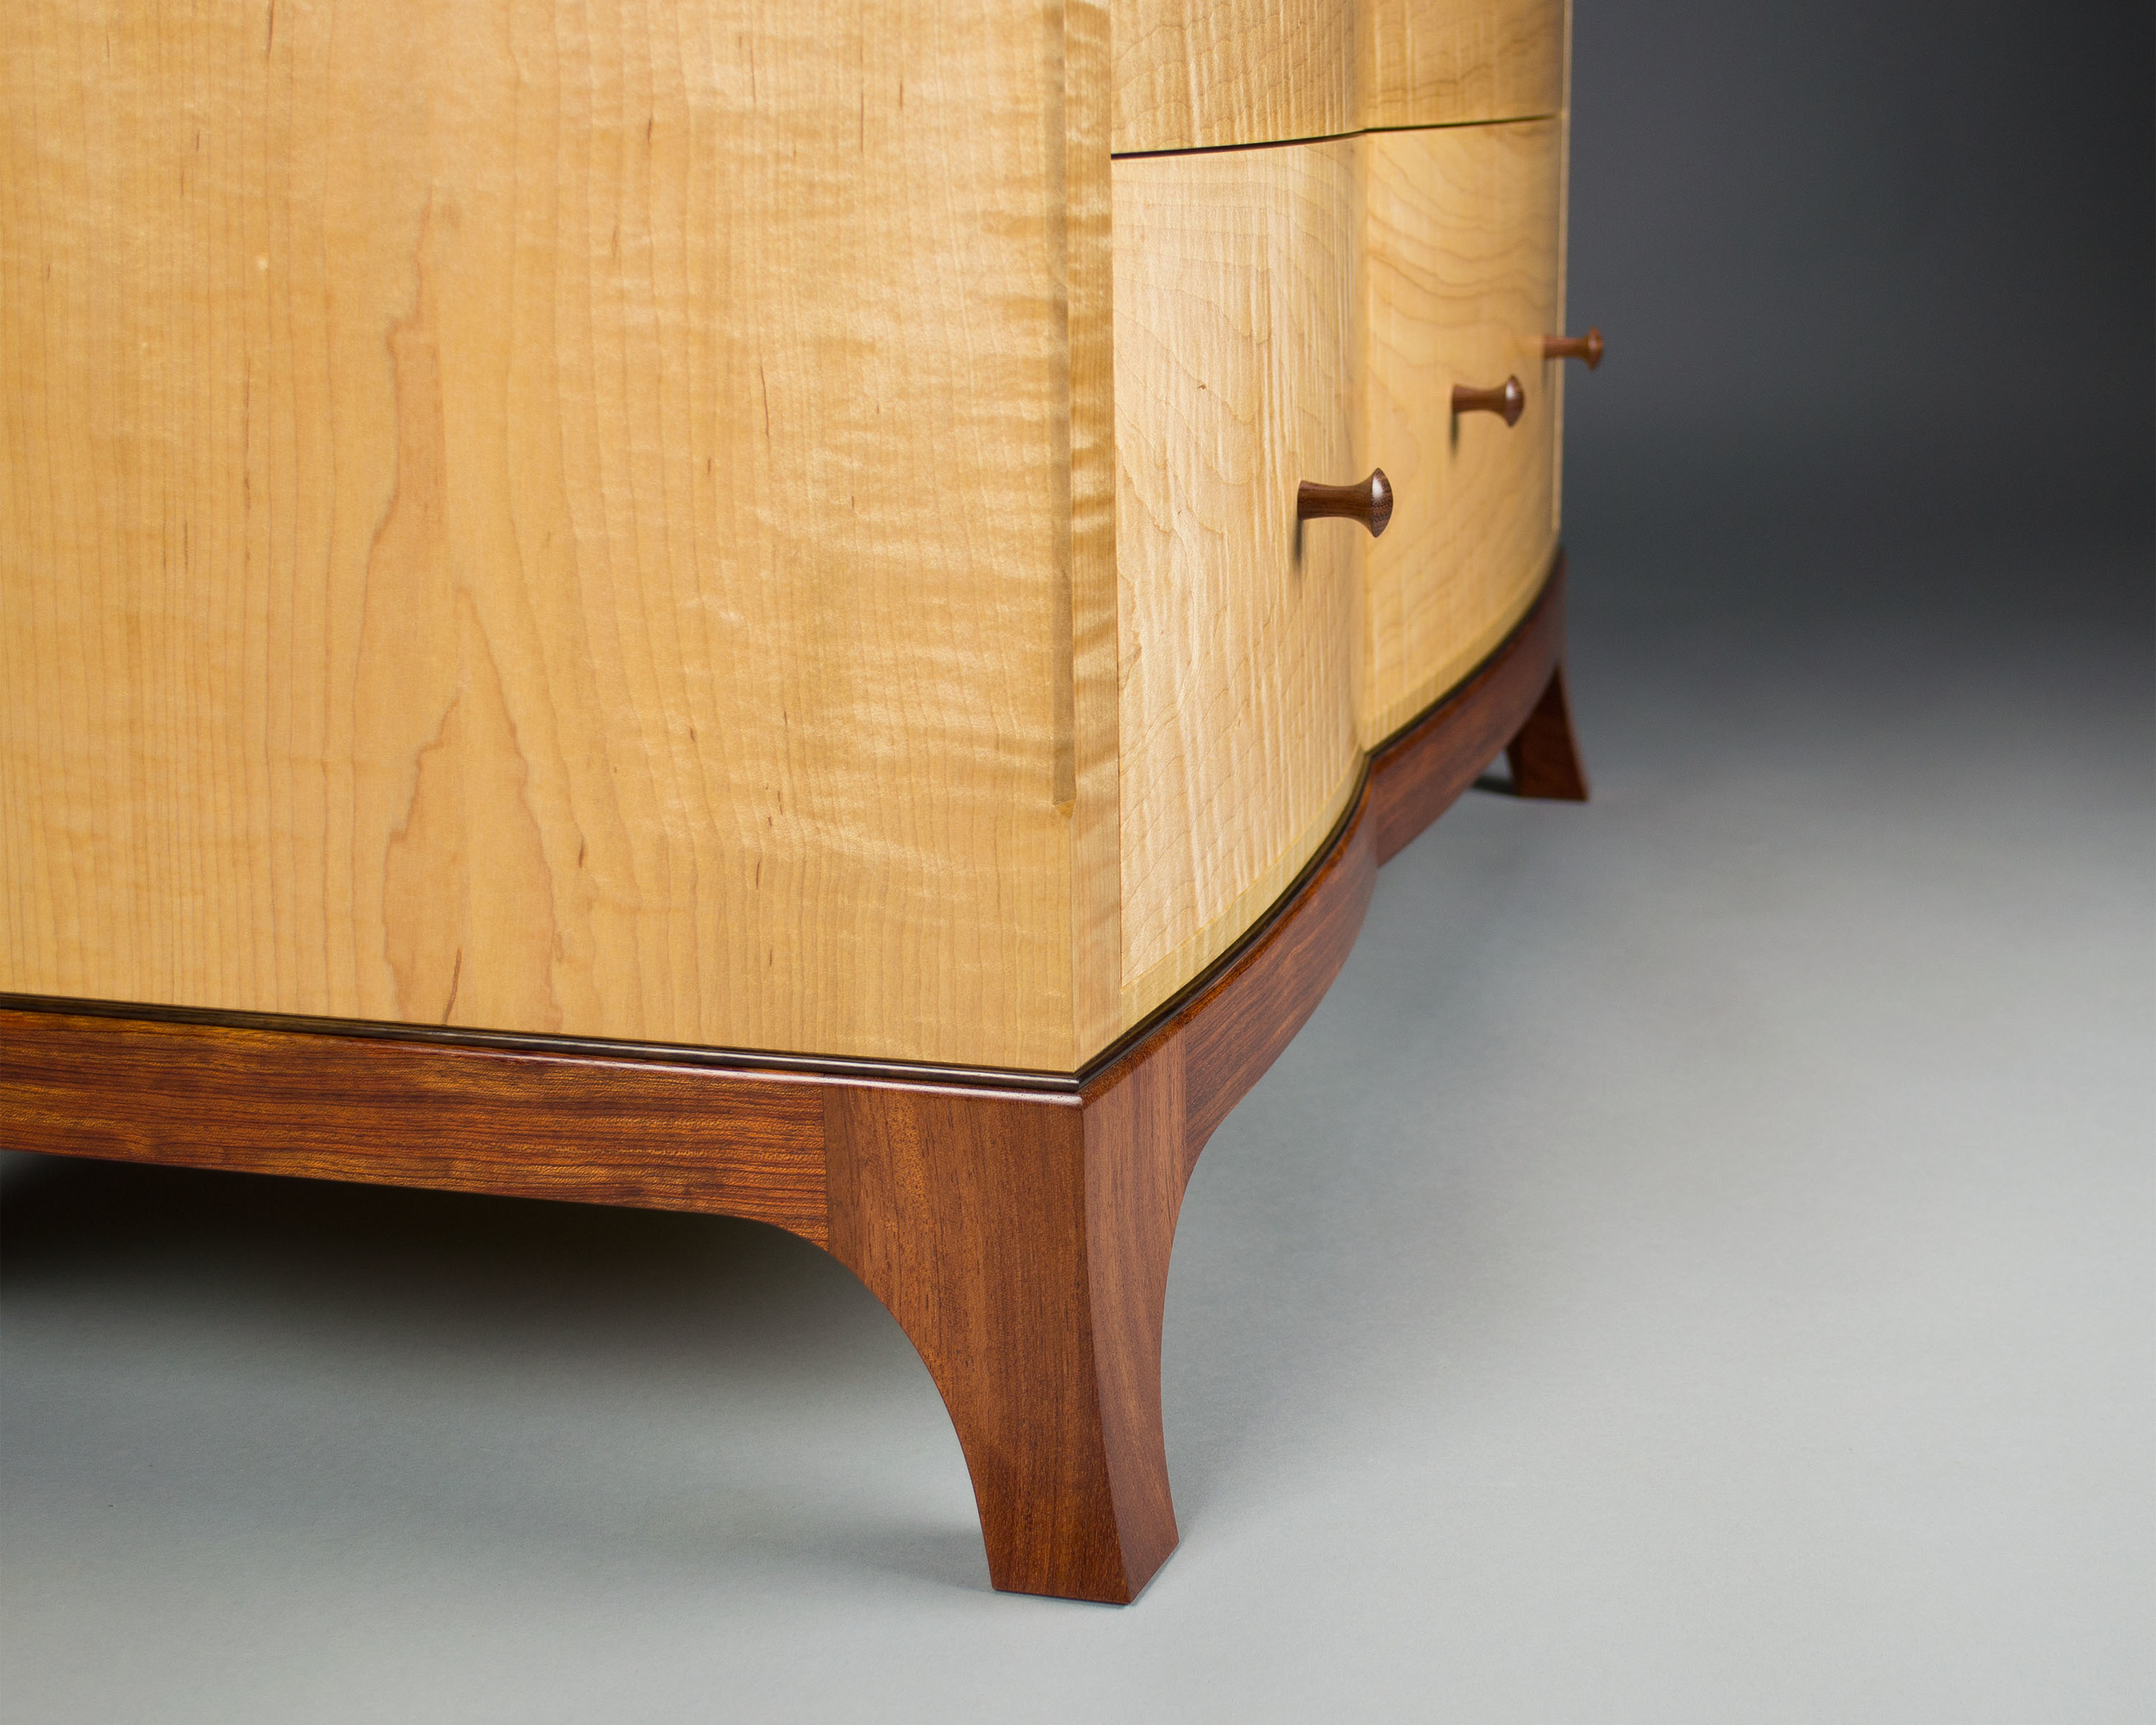 The bubinga and rosewood base is shaped to mirror the curves of the drawer fronts as well.